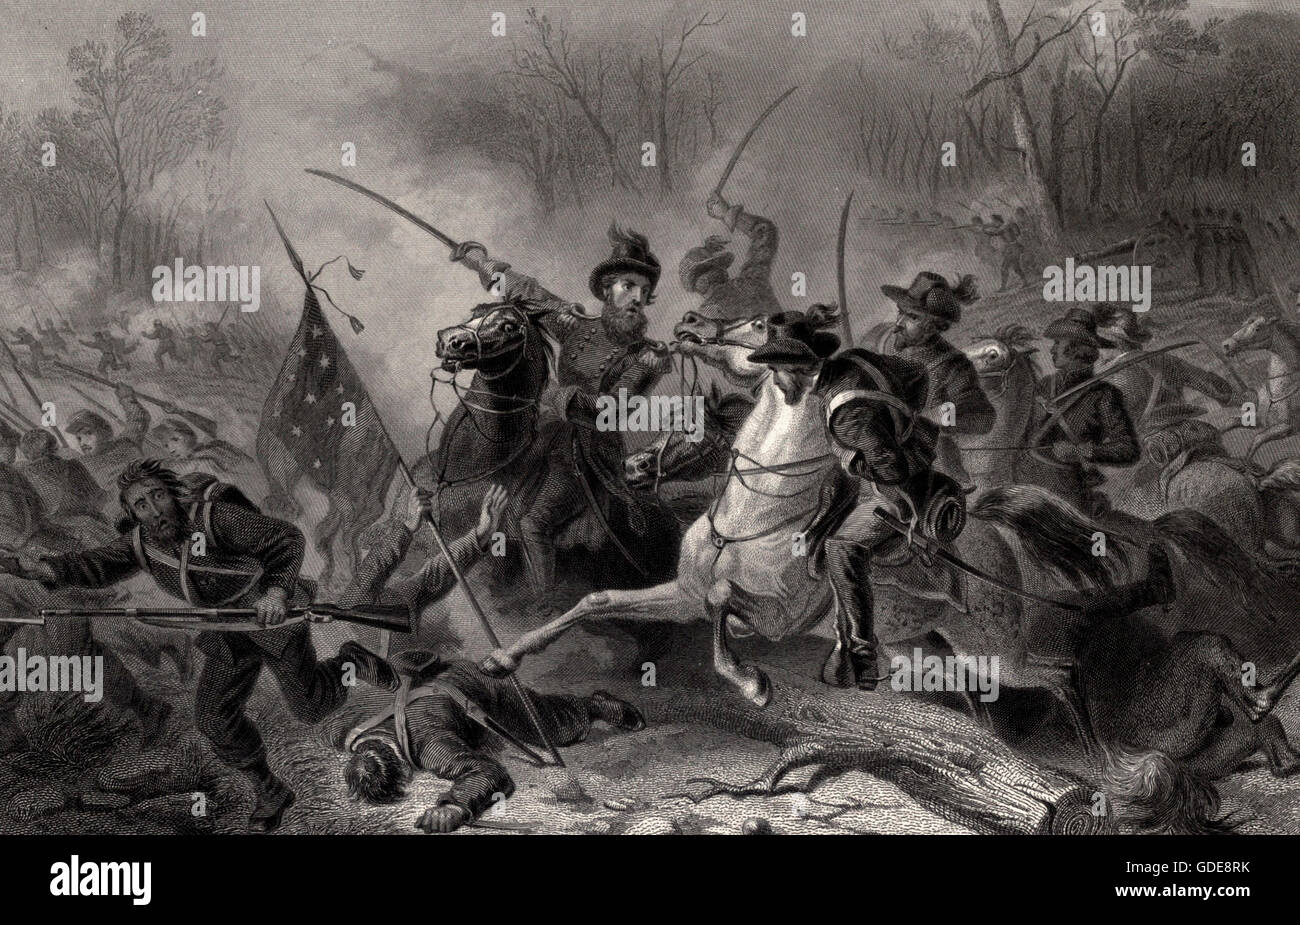 Battle of Shiloh, Tennessee during the USA Civil War - Stock Image